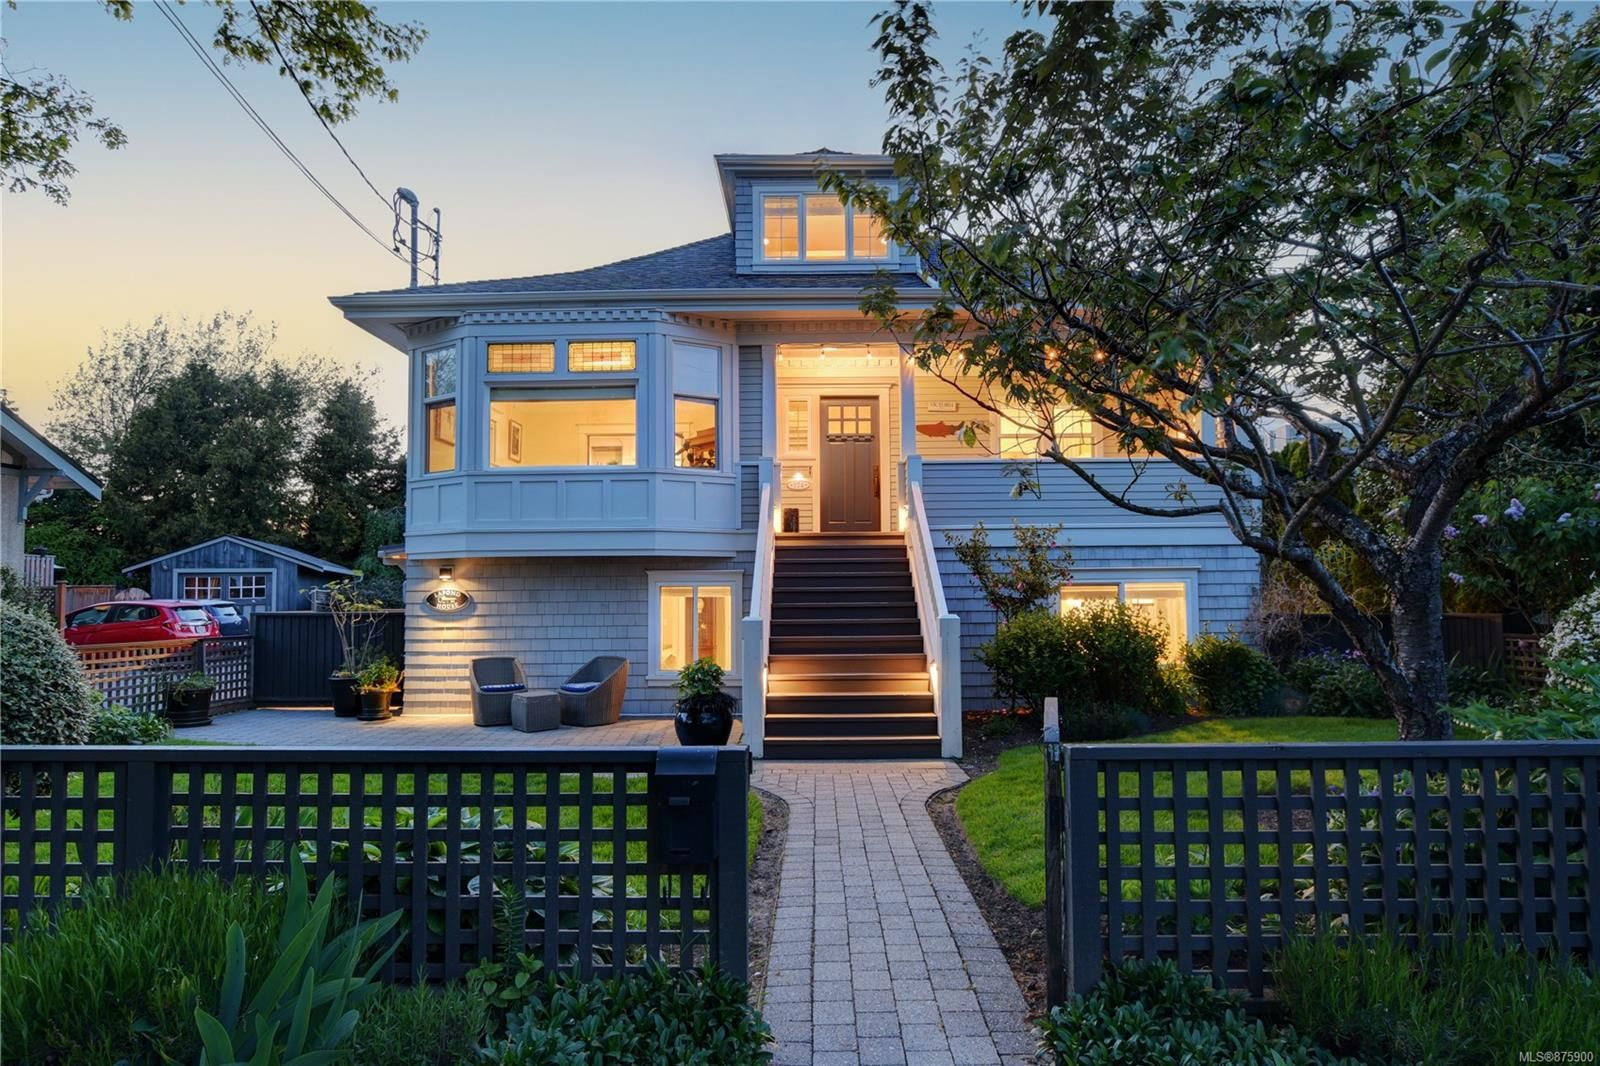 Stunning character home with full and extensive renovation.